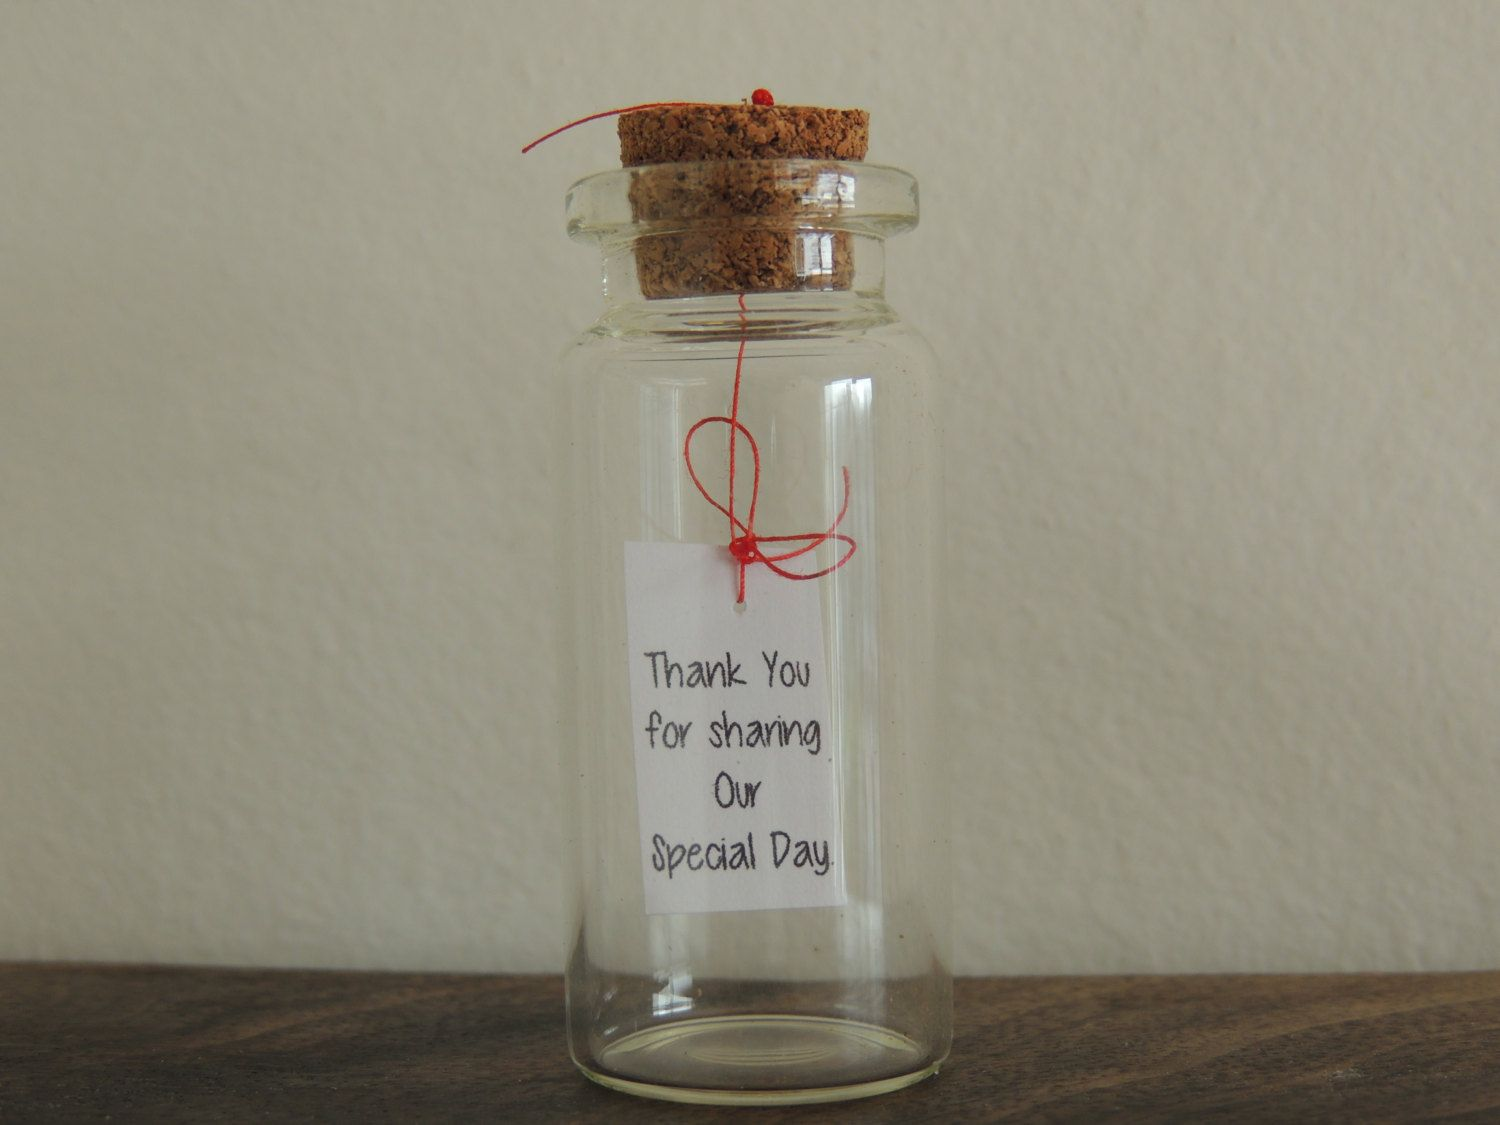 Message in a bottle Wedding Favor Thank You for sharing Our